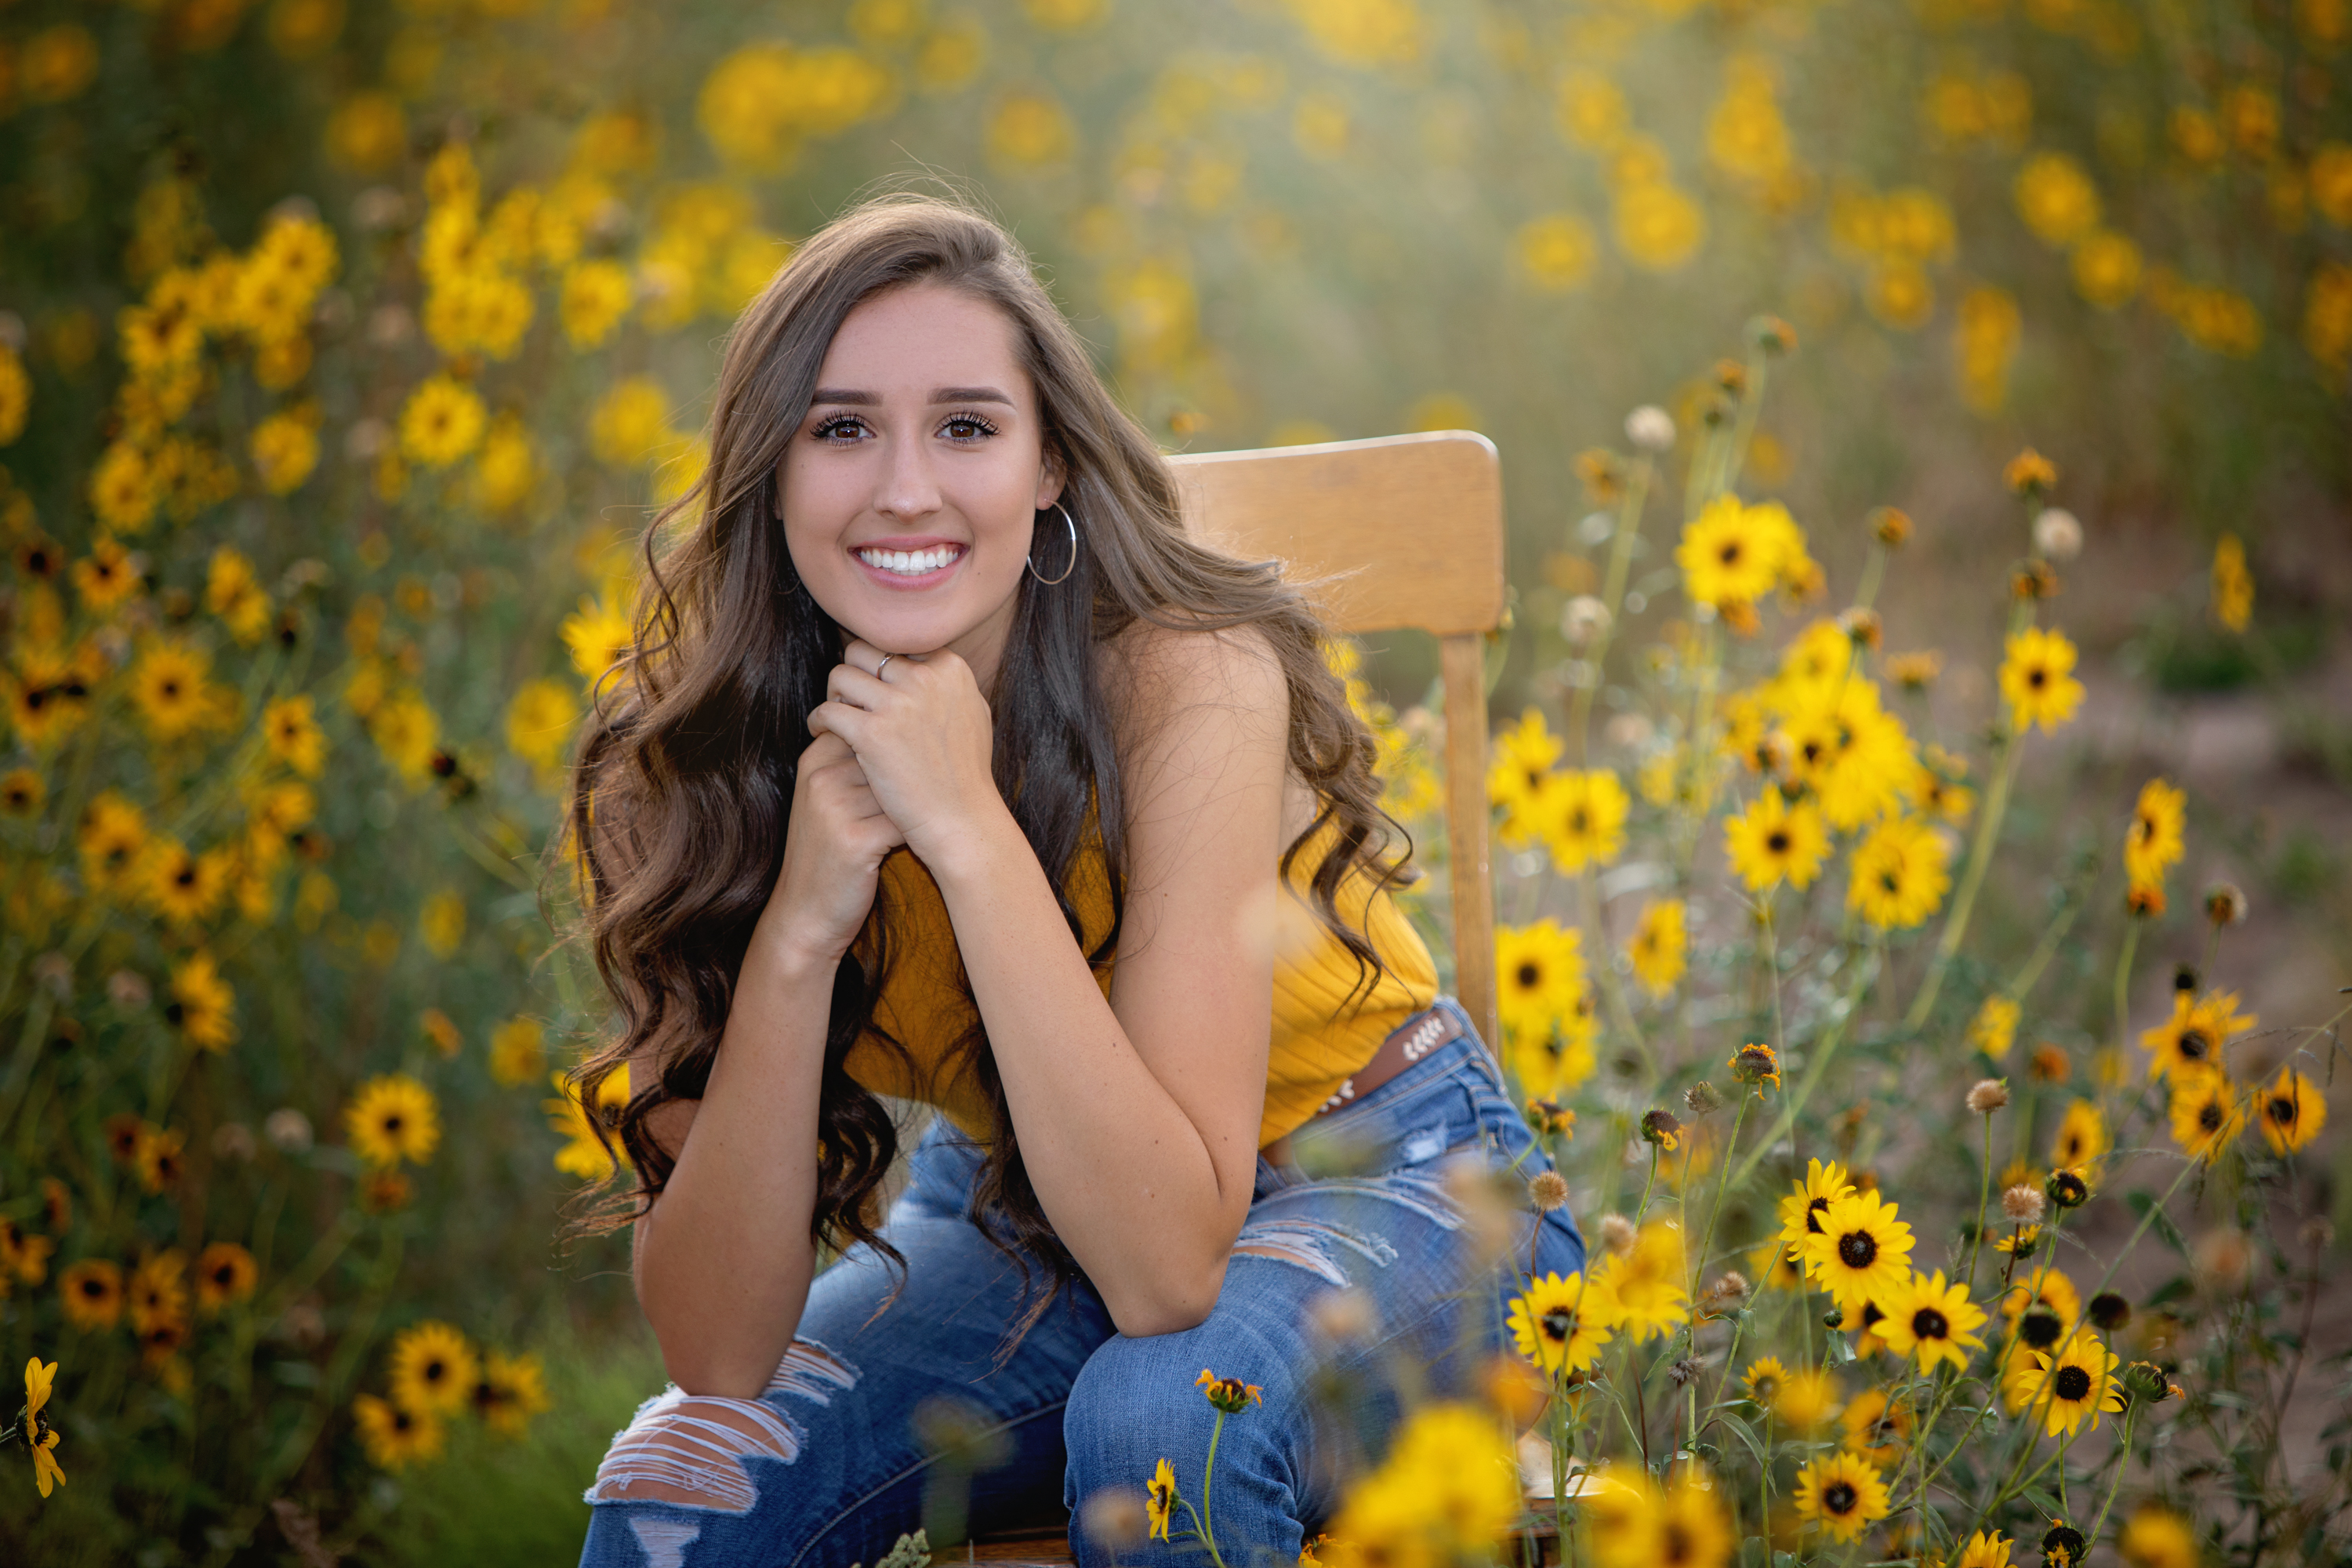 Senior Photography Inspirations in Photography